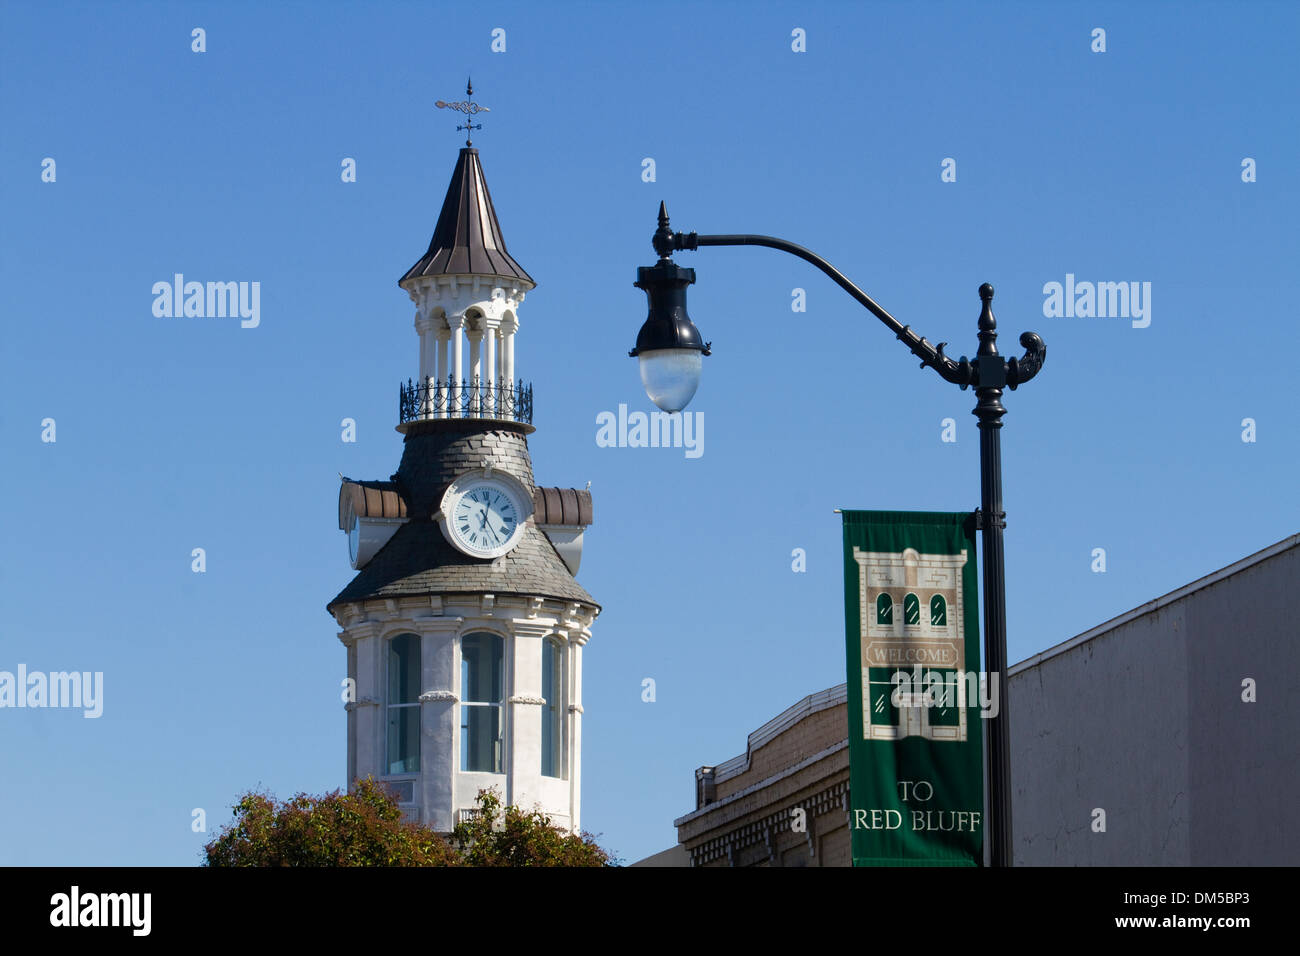 Welcome Banner  Landmark Clock Tower Red Bluff - Stock Image